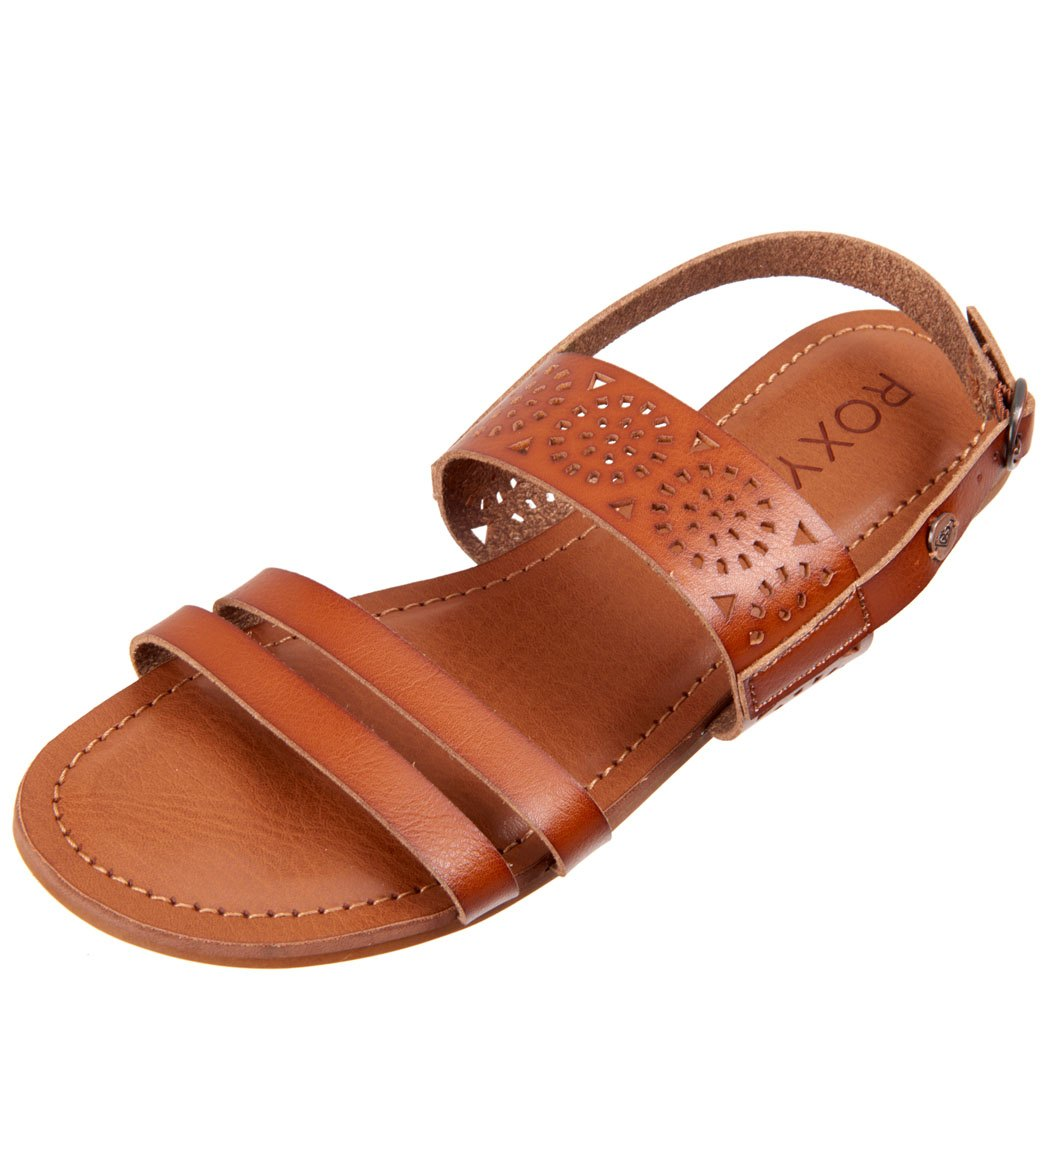 c1d31c646f79 Roxy Women s Felicia Sandal at SwimOutlet.com